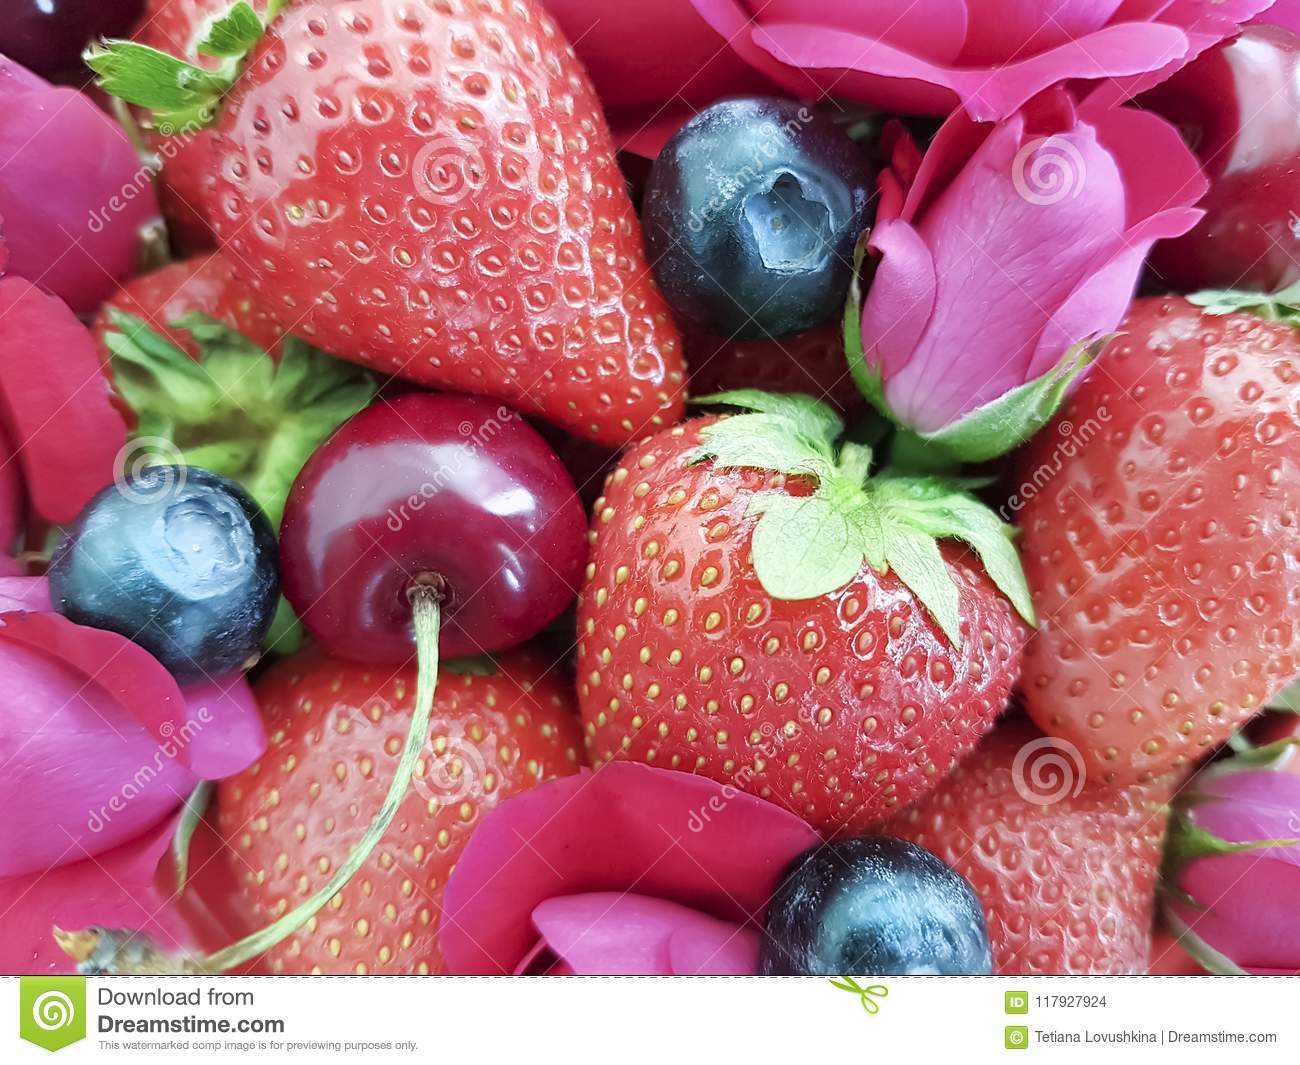 strawberry cherry, blueberry dessert refreshment rose flower background